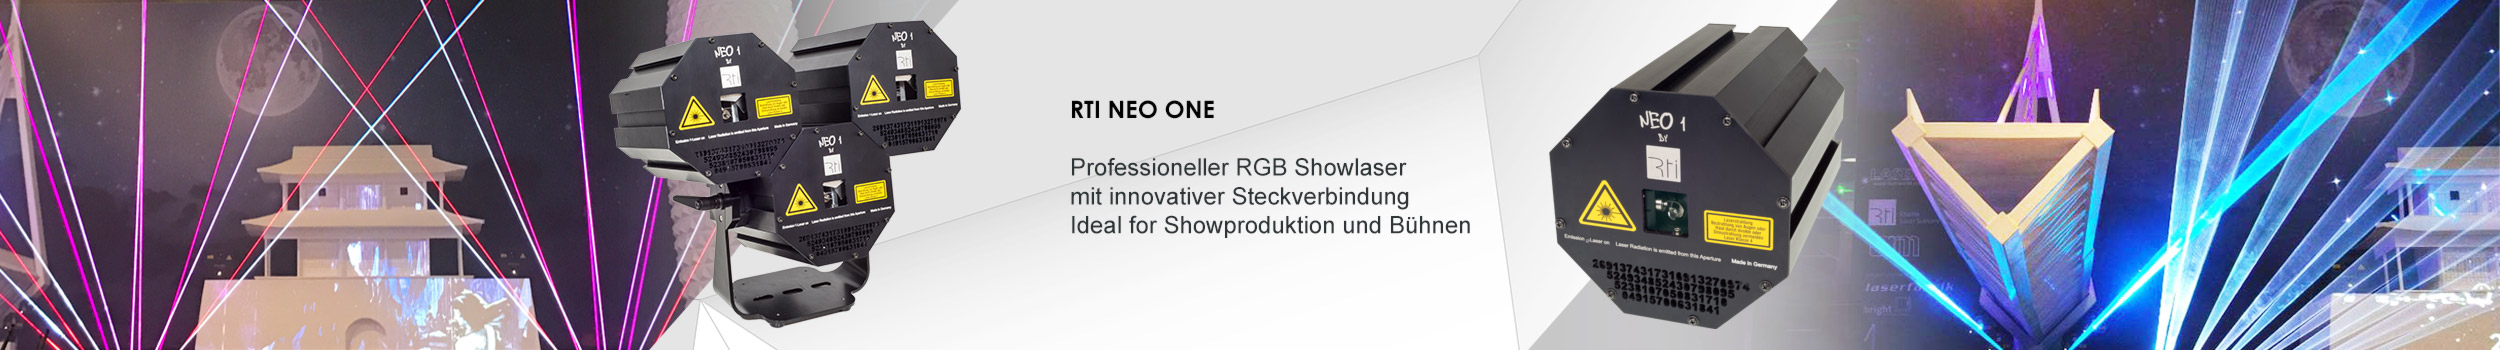 RTI NEO ONE Showlaser